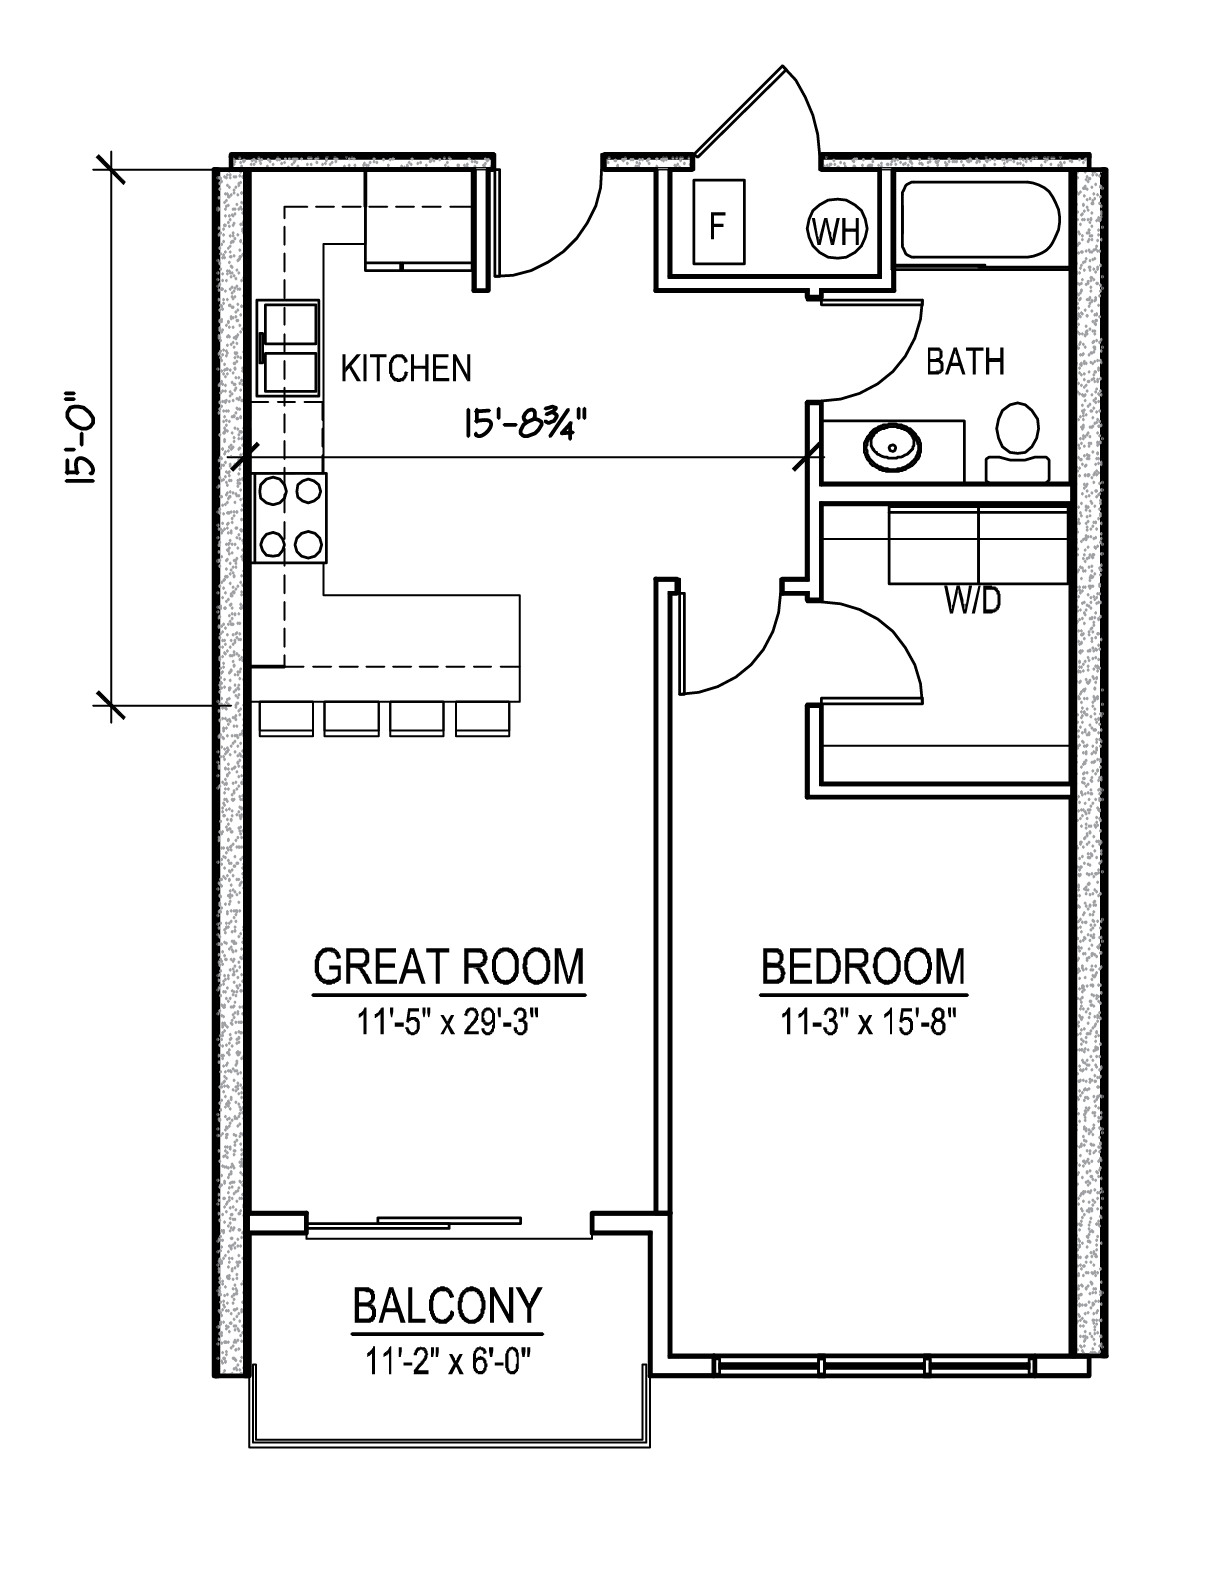 424 M 1 Bedroom@2x.png